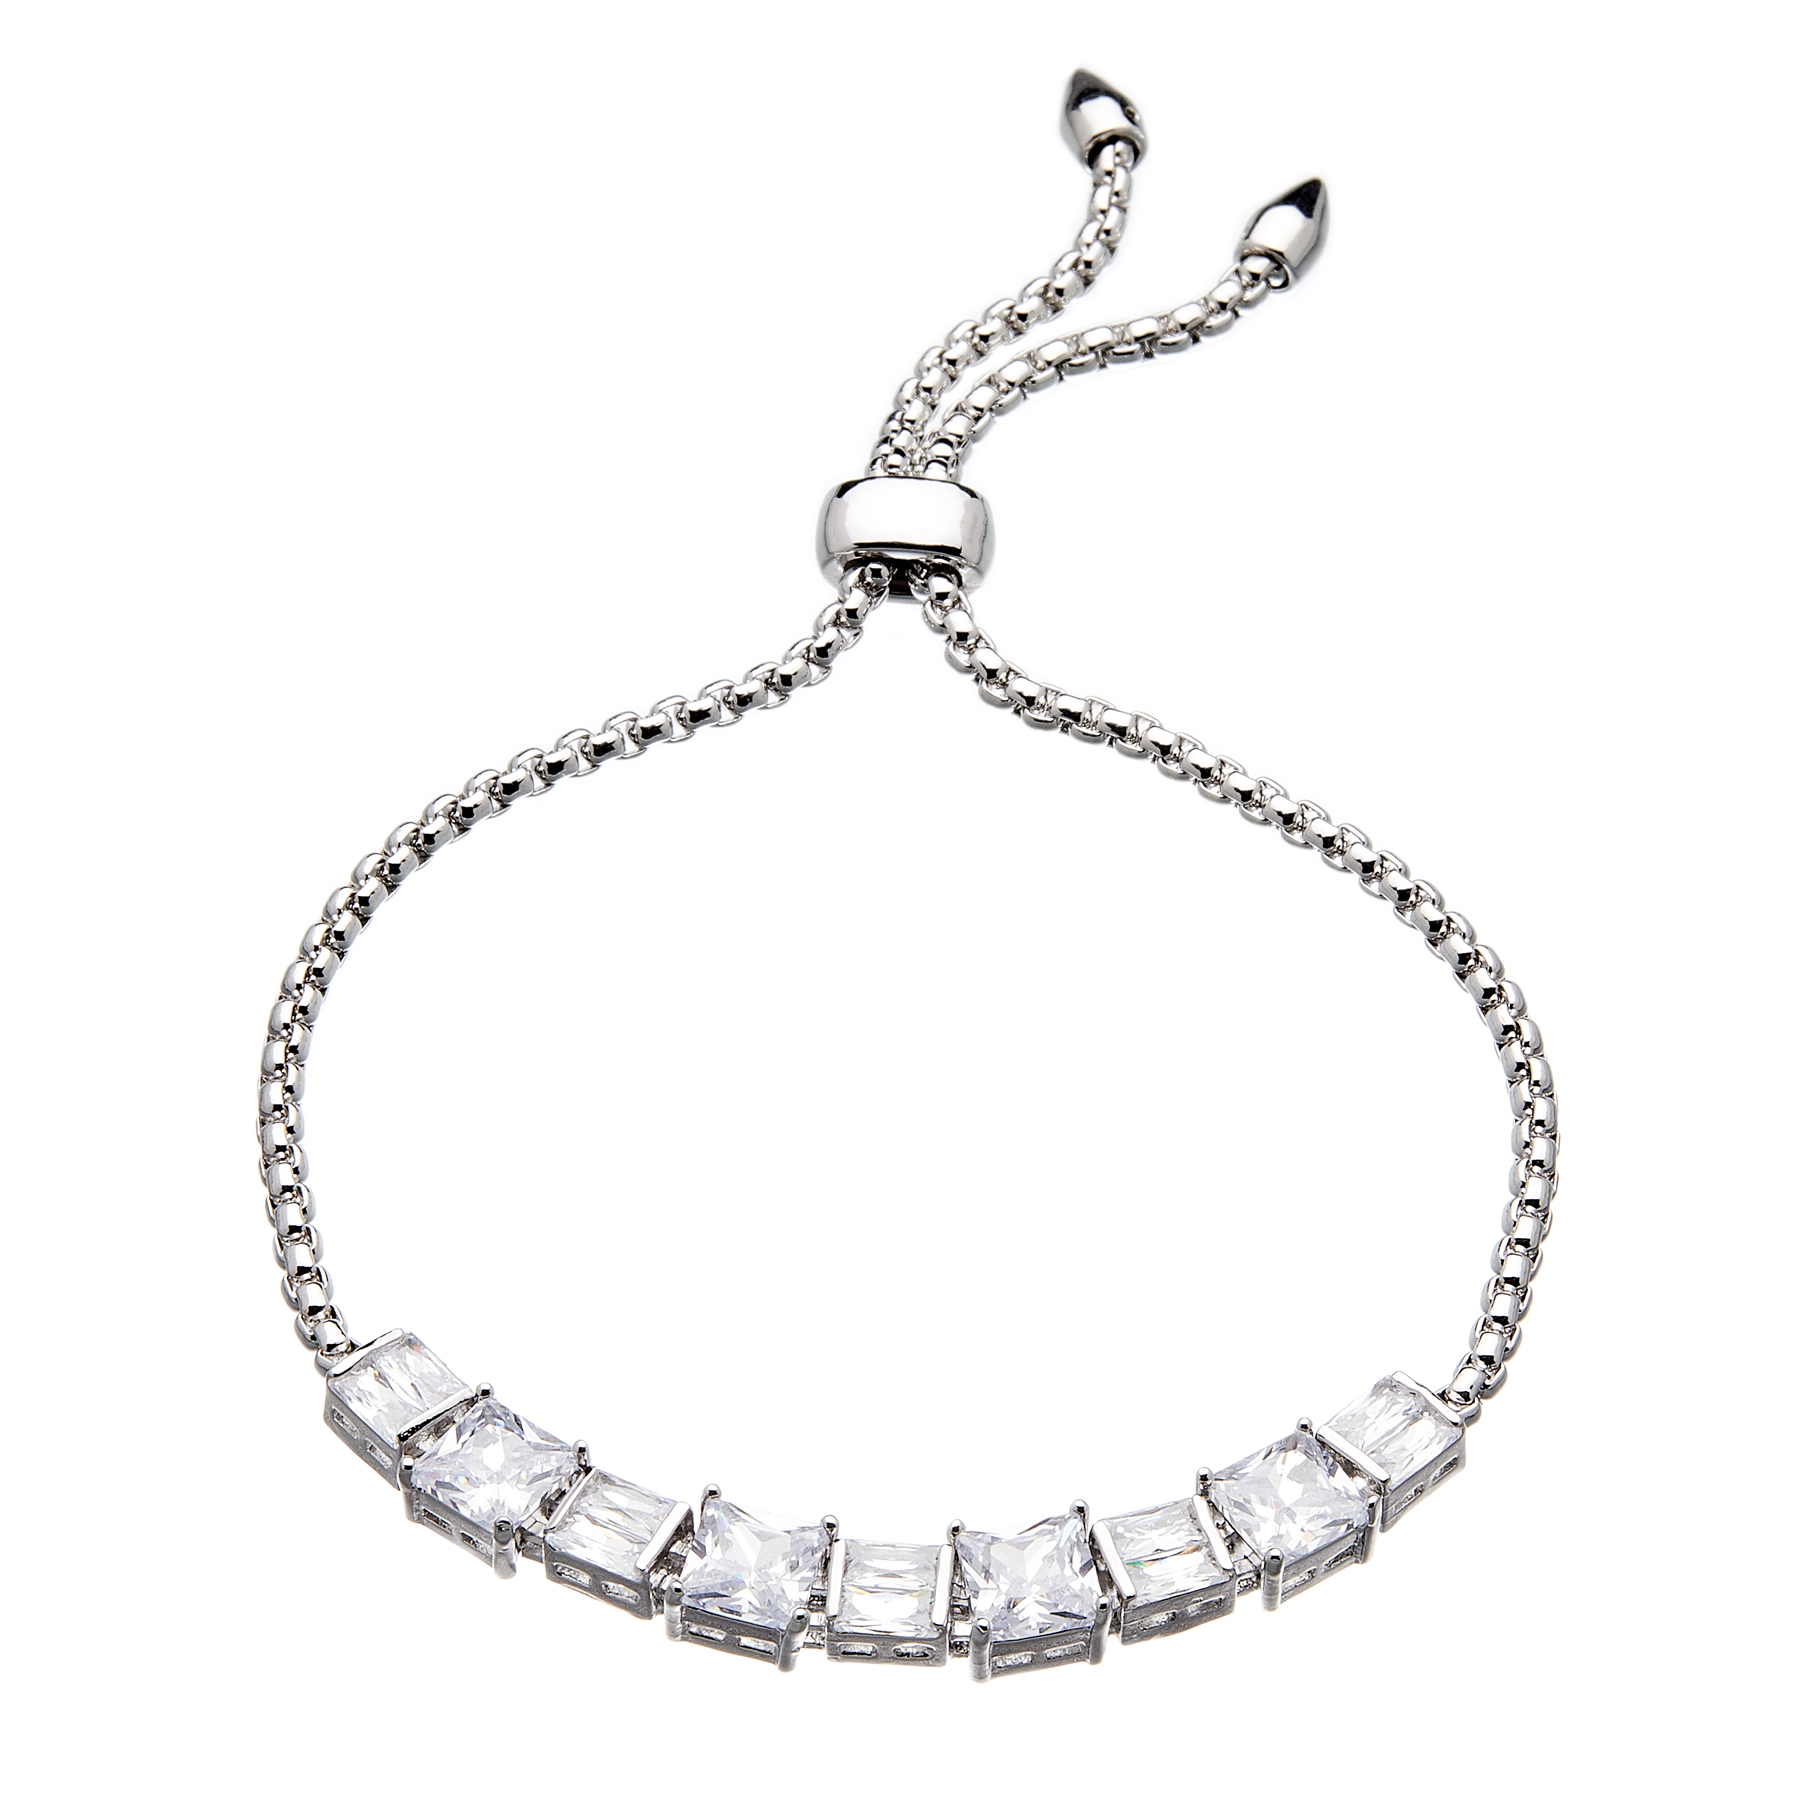 Silver strand Bracelet - adjustable sliding clasp with nine Cubic Zirconia Stones - Nadra